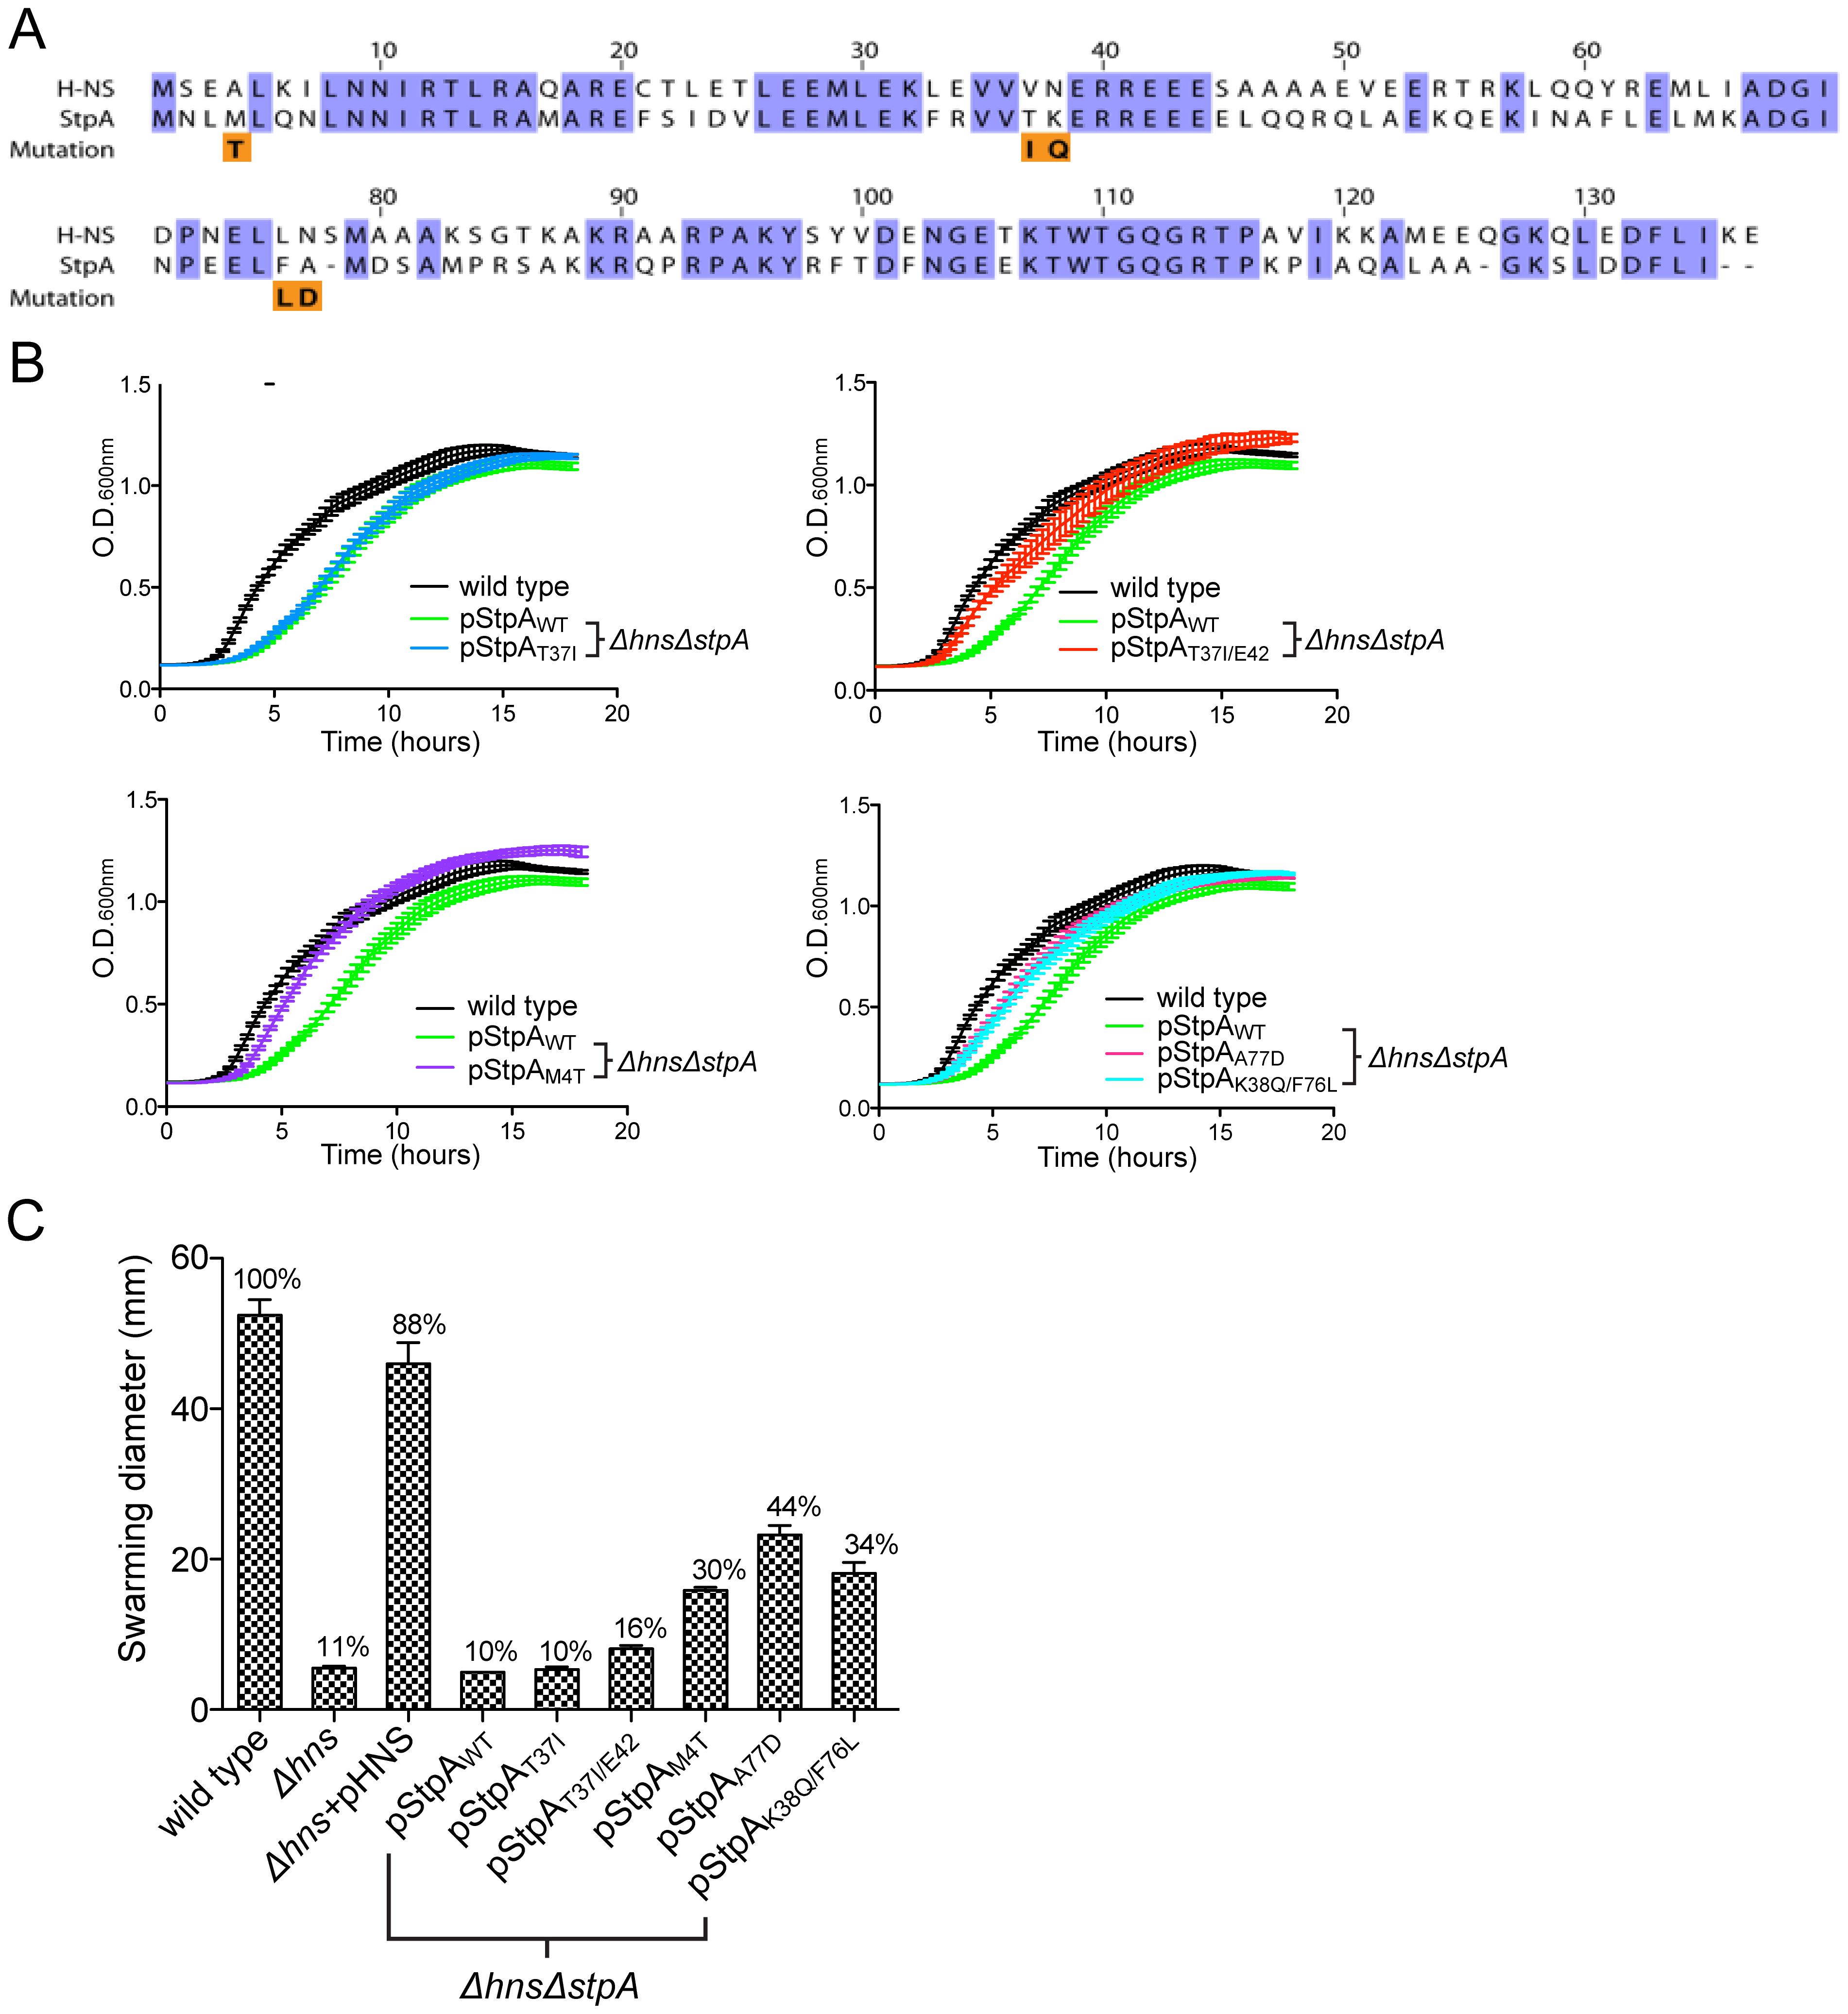 Missense mutations in the H-NS paralogue StpA partially restore the impaired growth and motility phenotypes of <i>hns</i> mutants.